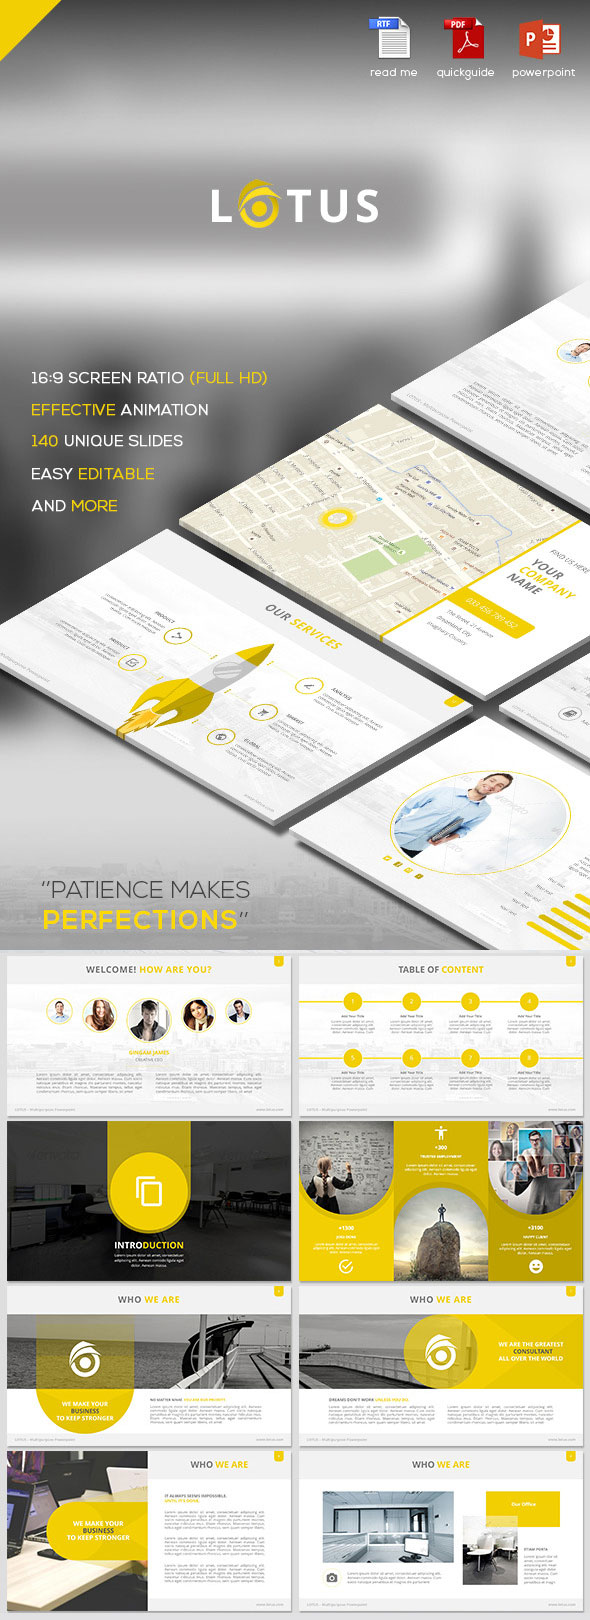 lotus simple multipurpose powerpoint template